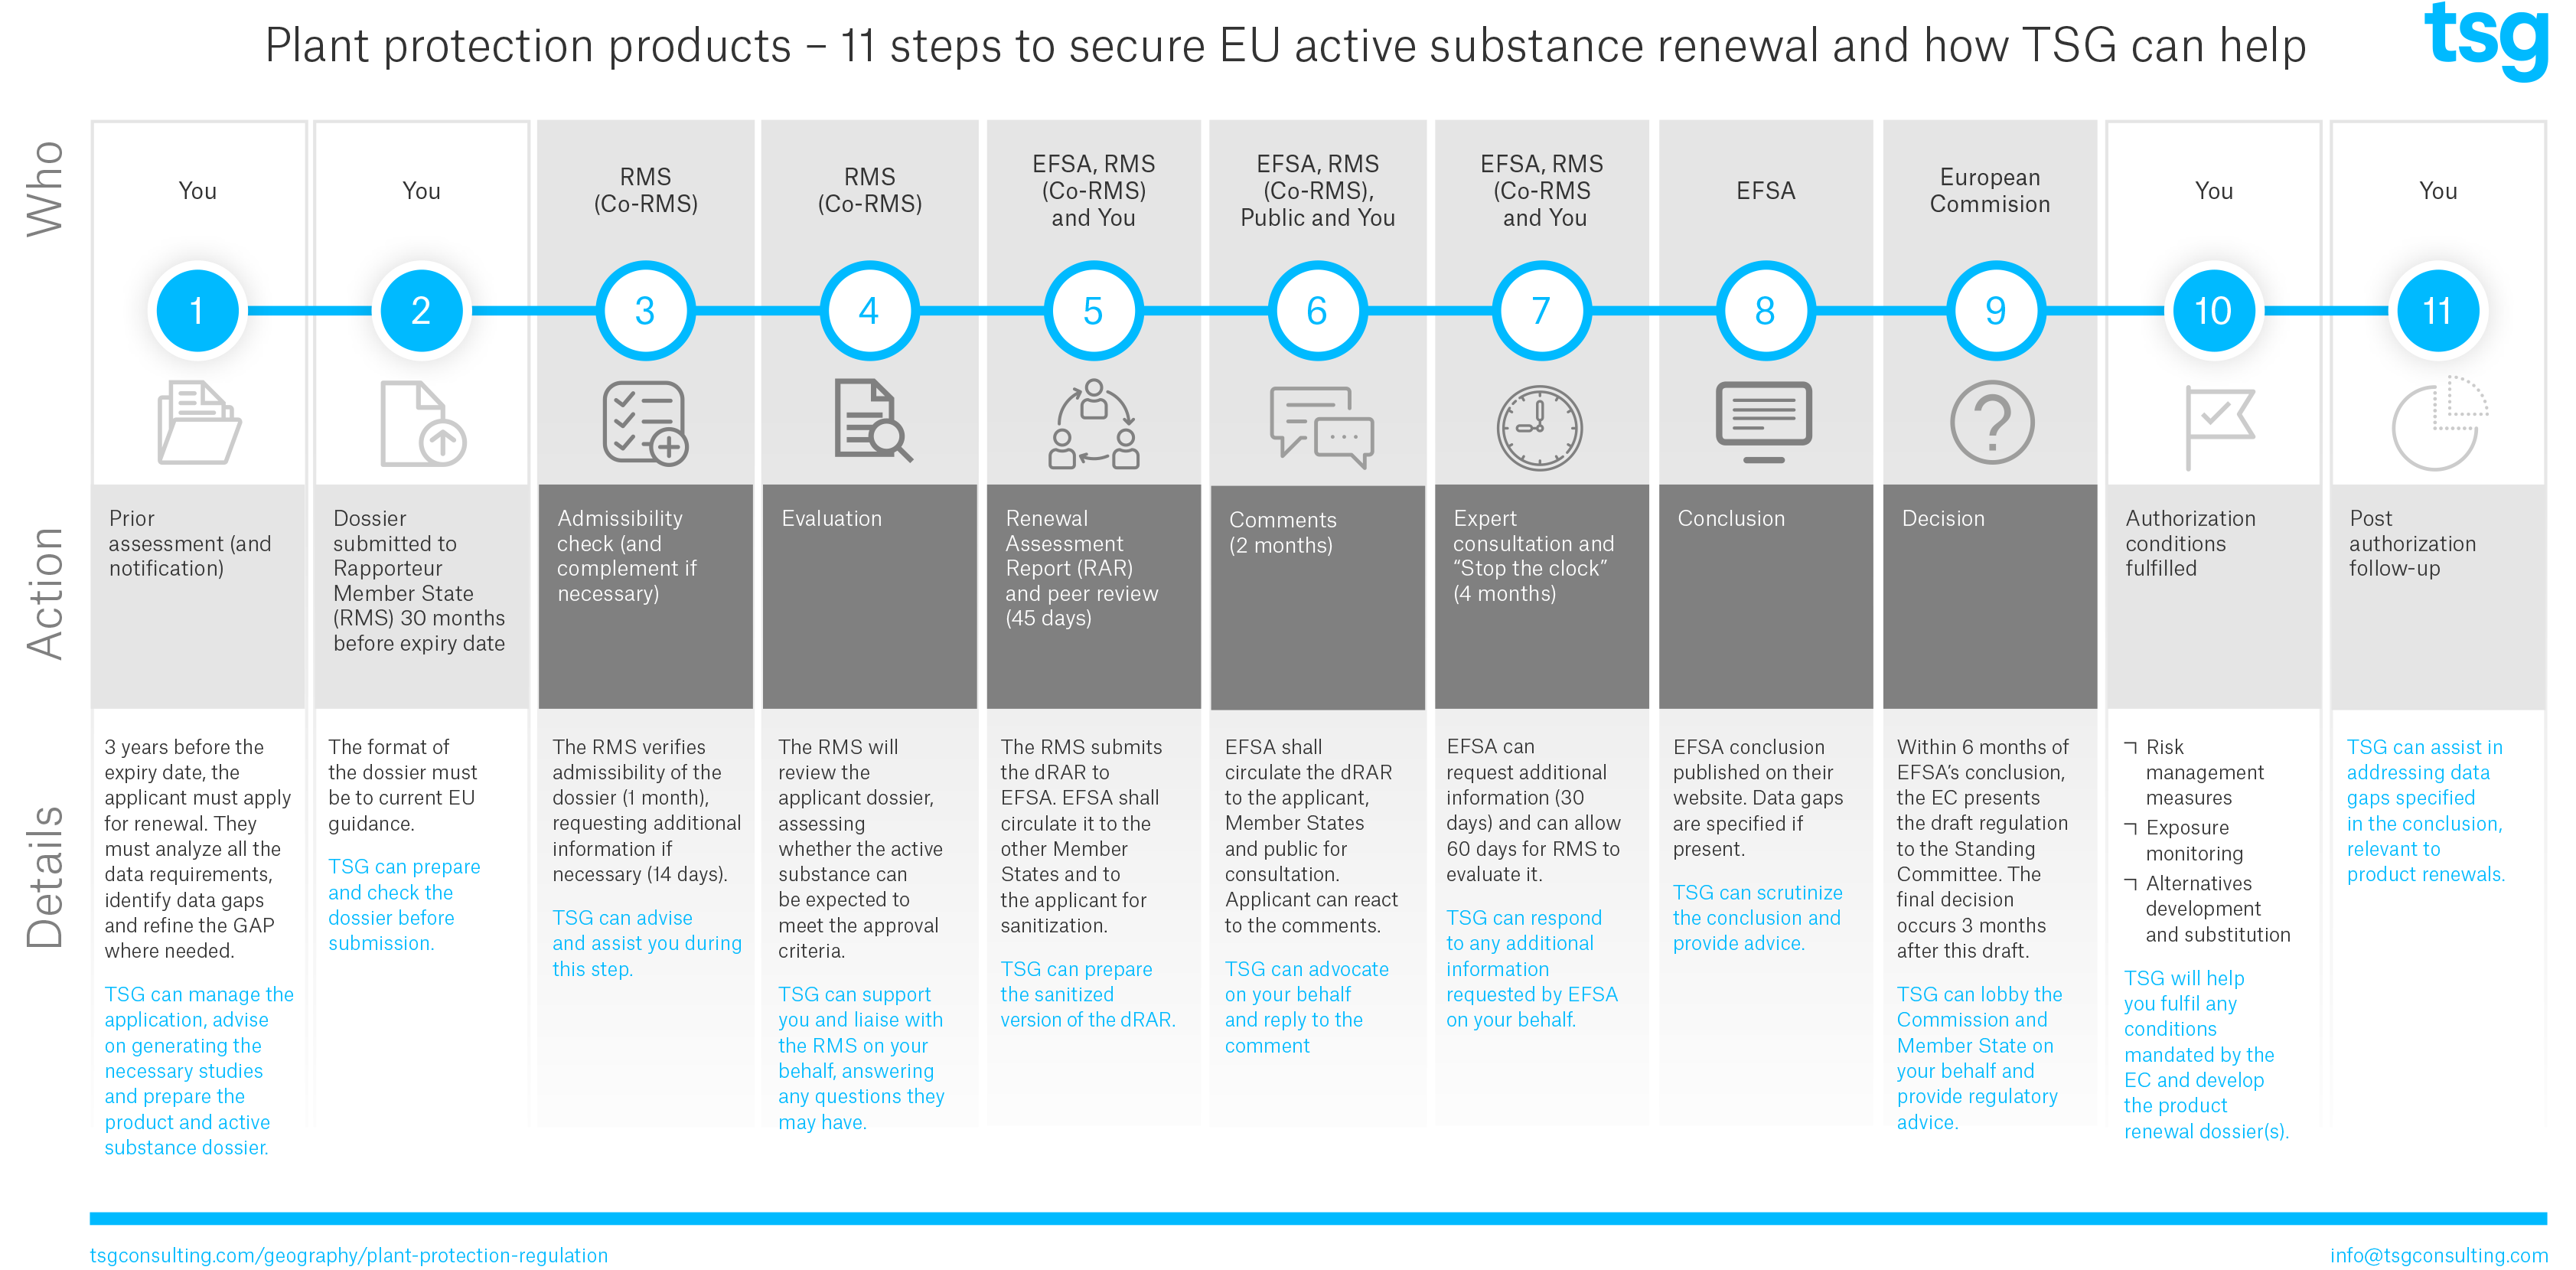 Plant Protection Products - 11 steps to secure EU active substance renewal and how TSG can help